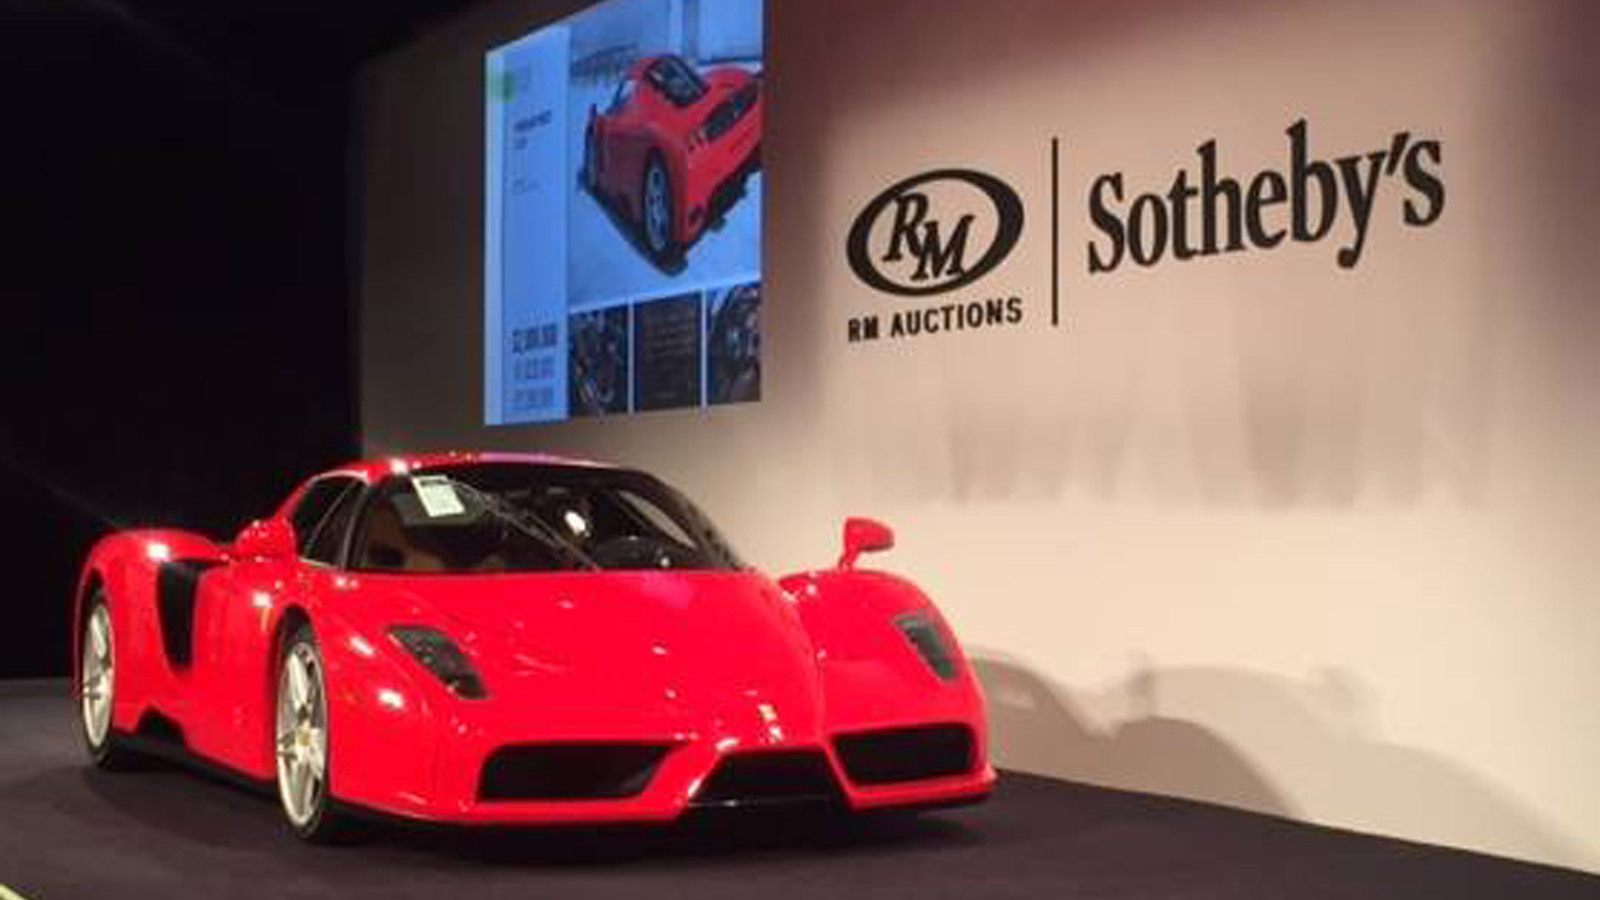 2005 Ferrari Enzo #400 donated to Pope John Paul II sells for $6,050,000